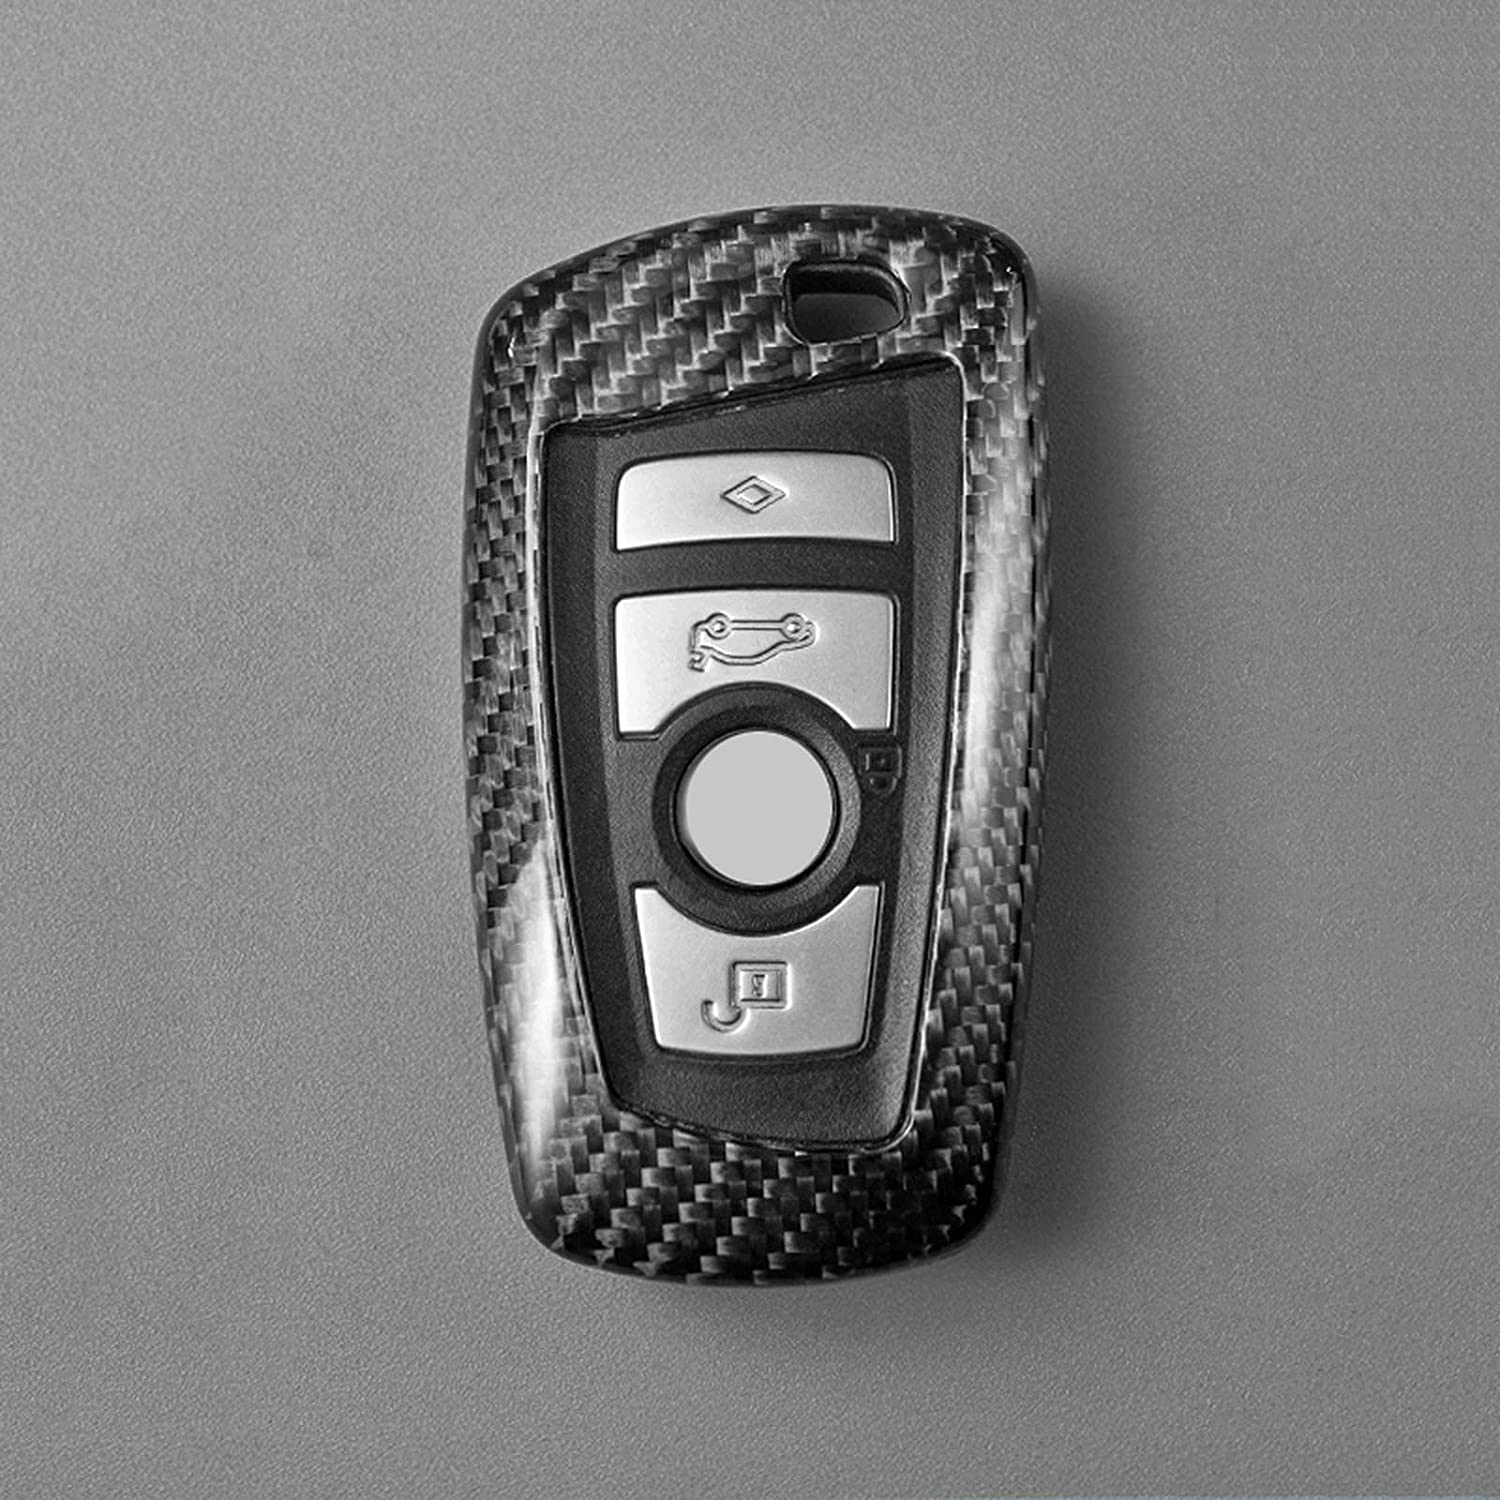 Carbon Fiber Car Key Fob Cover Case Bag 1 3 6 Luxury goods Weekly update 5 for 2 BMW 4